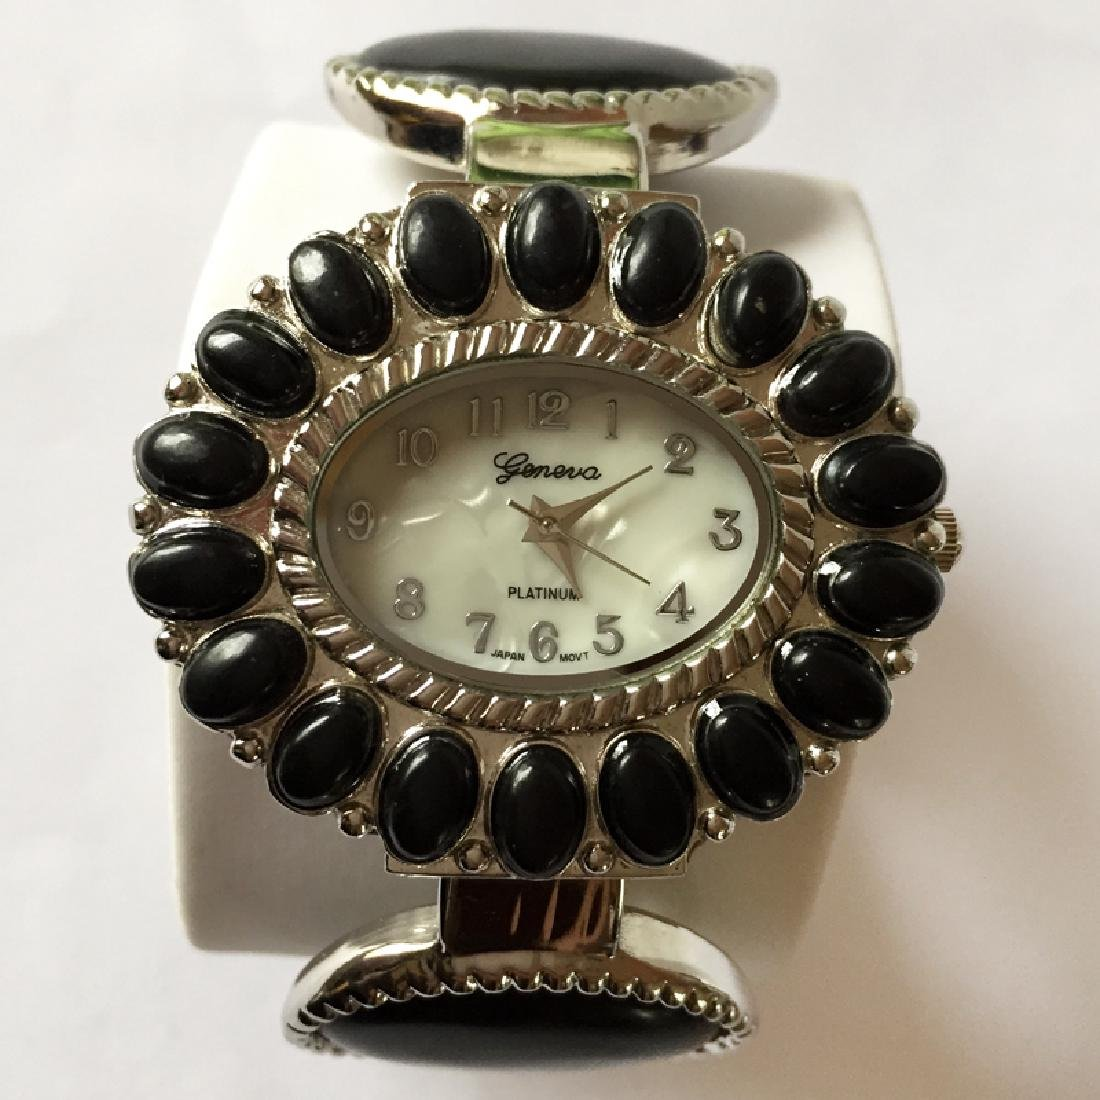 Cuff style bracelet with oval shape watch with MOP dial - 2